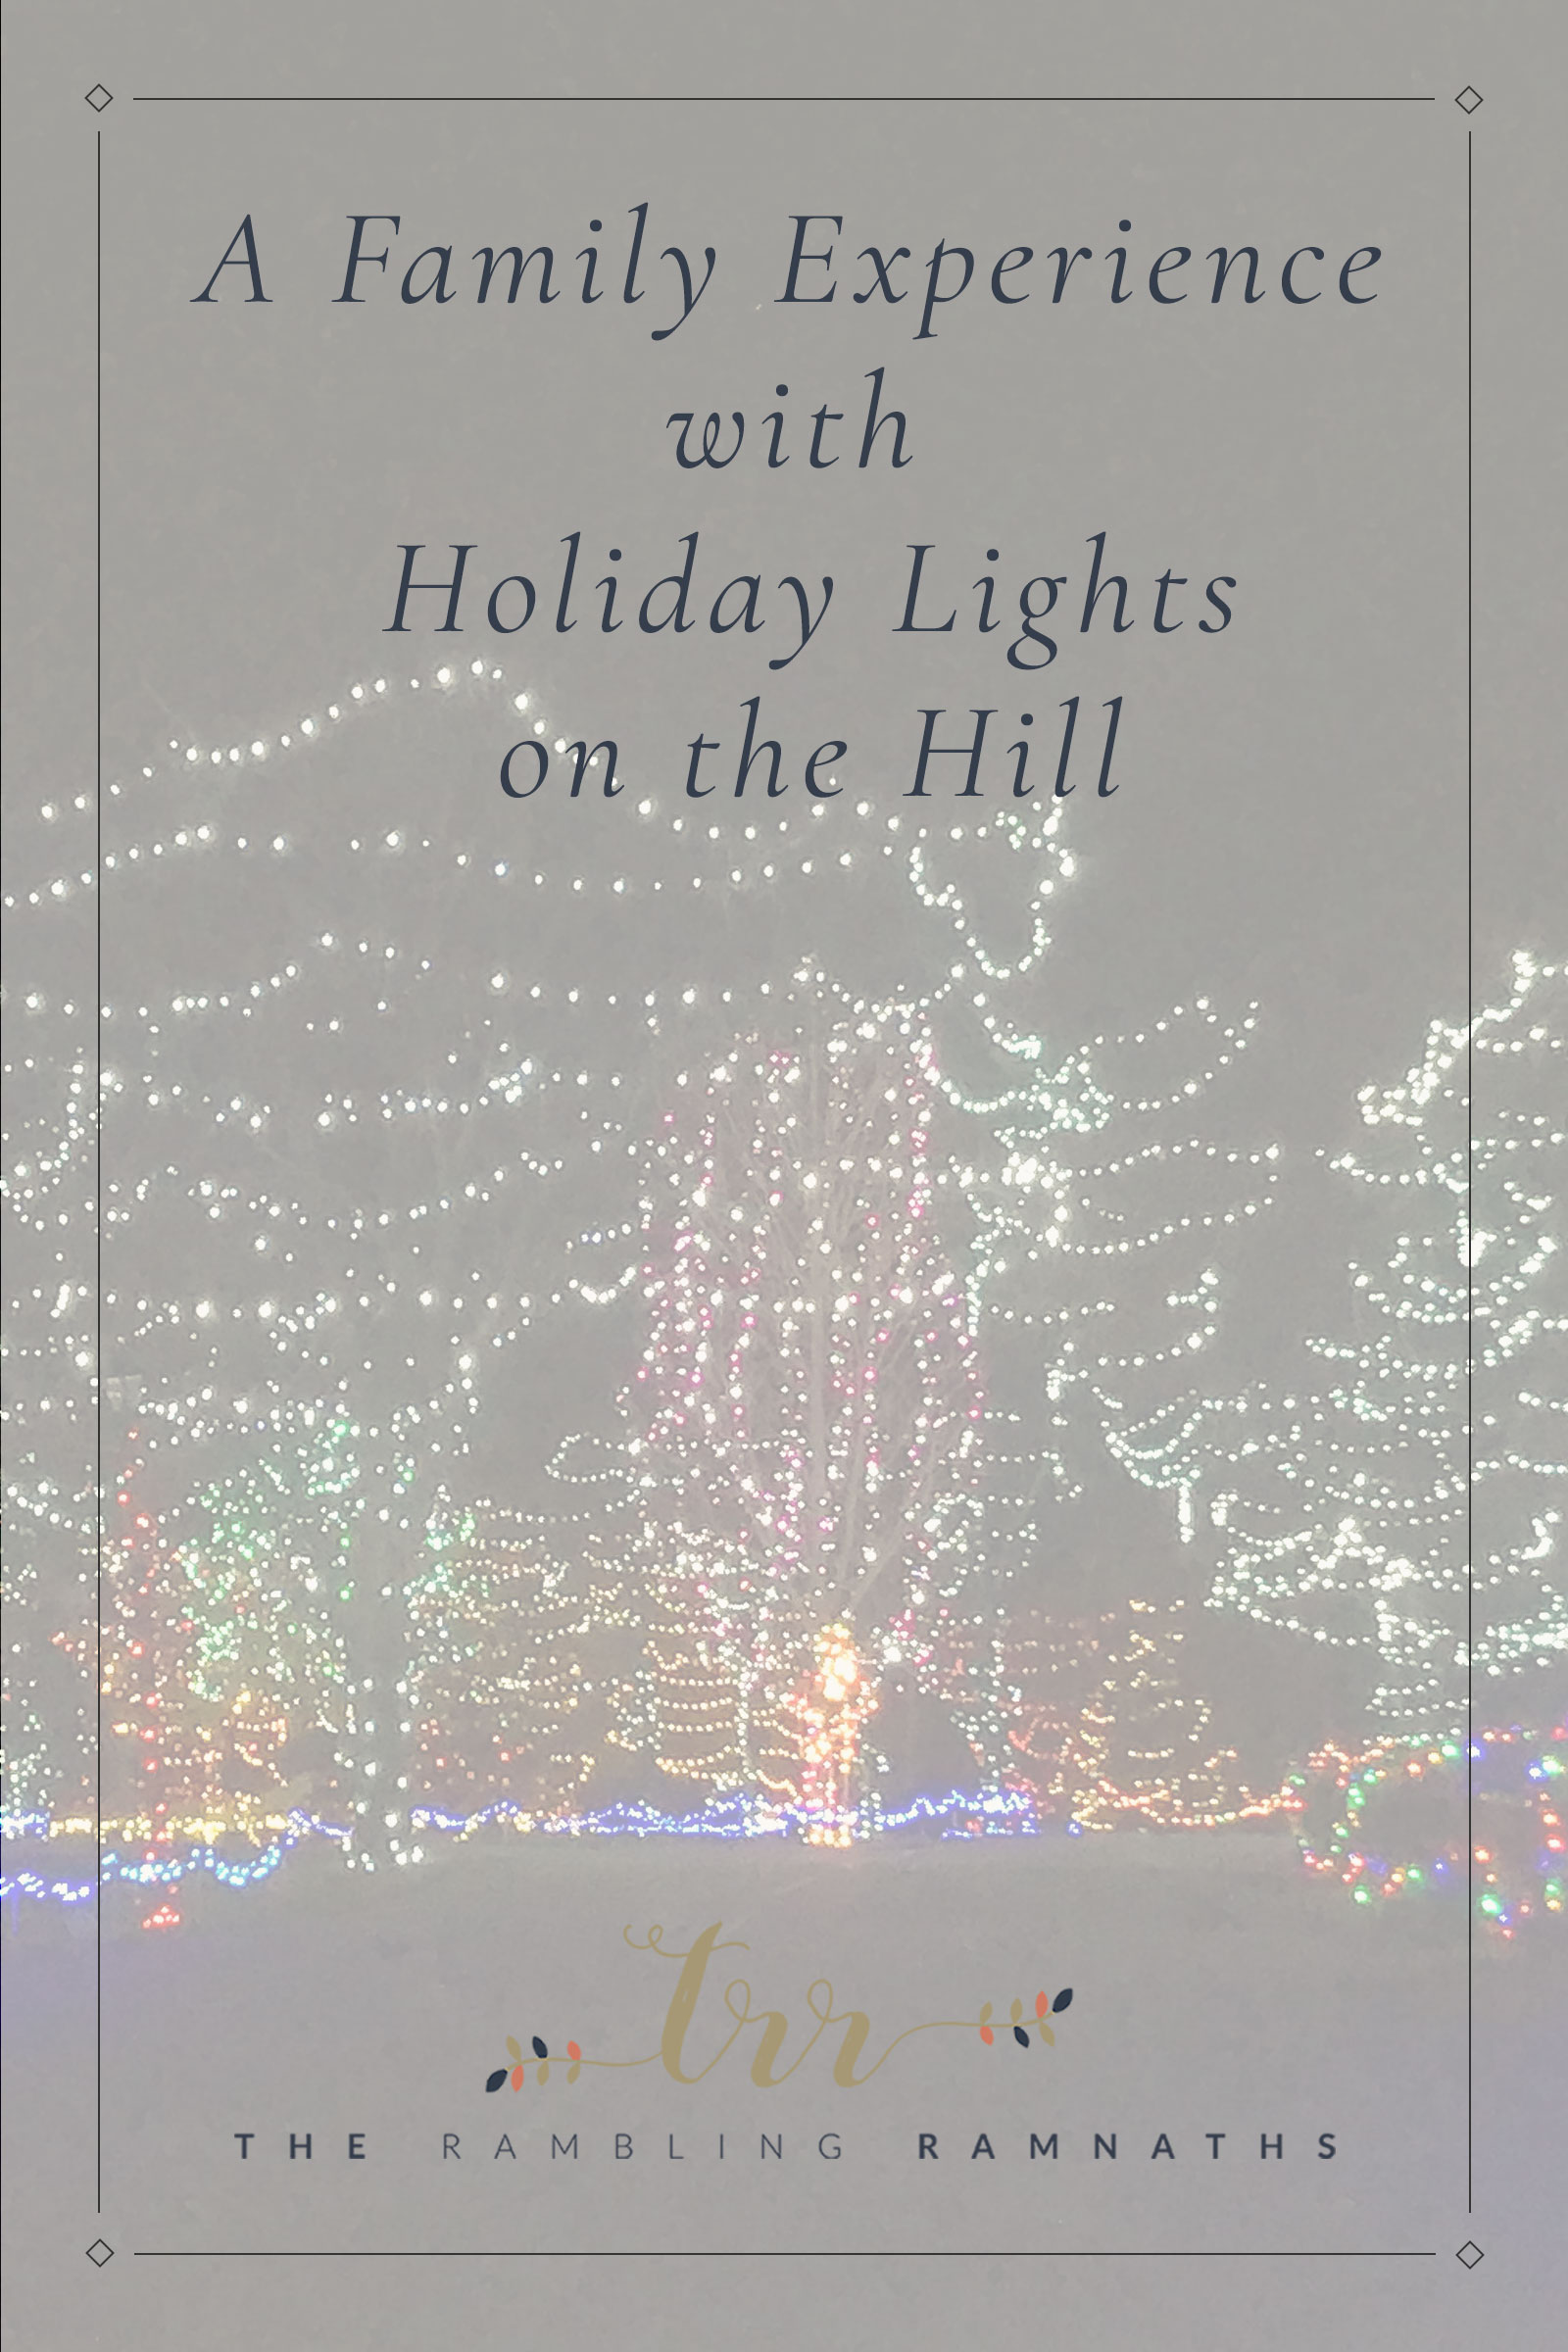 Come experience Pyramid Hill Sculpture Park's Holiday Lights on the Hill with us! It's a place where you can drive through and look at Christmas lights located in Hamilton Ohio. It makes for a fun family night and it's a great way to really get into the holiday spirit!